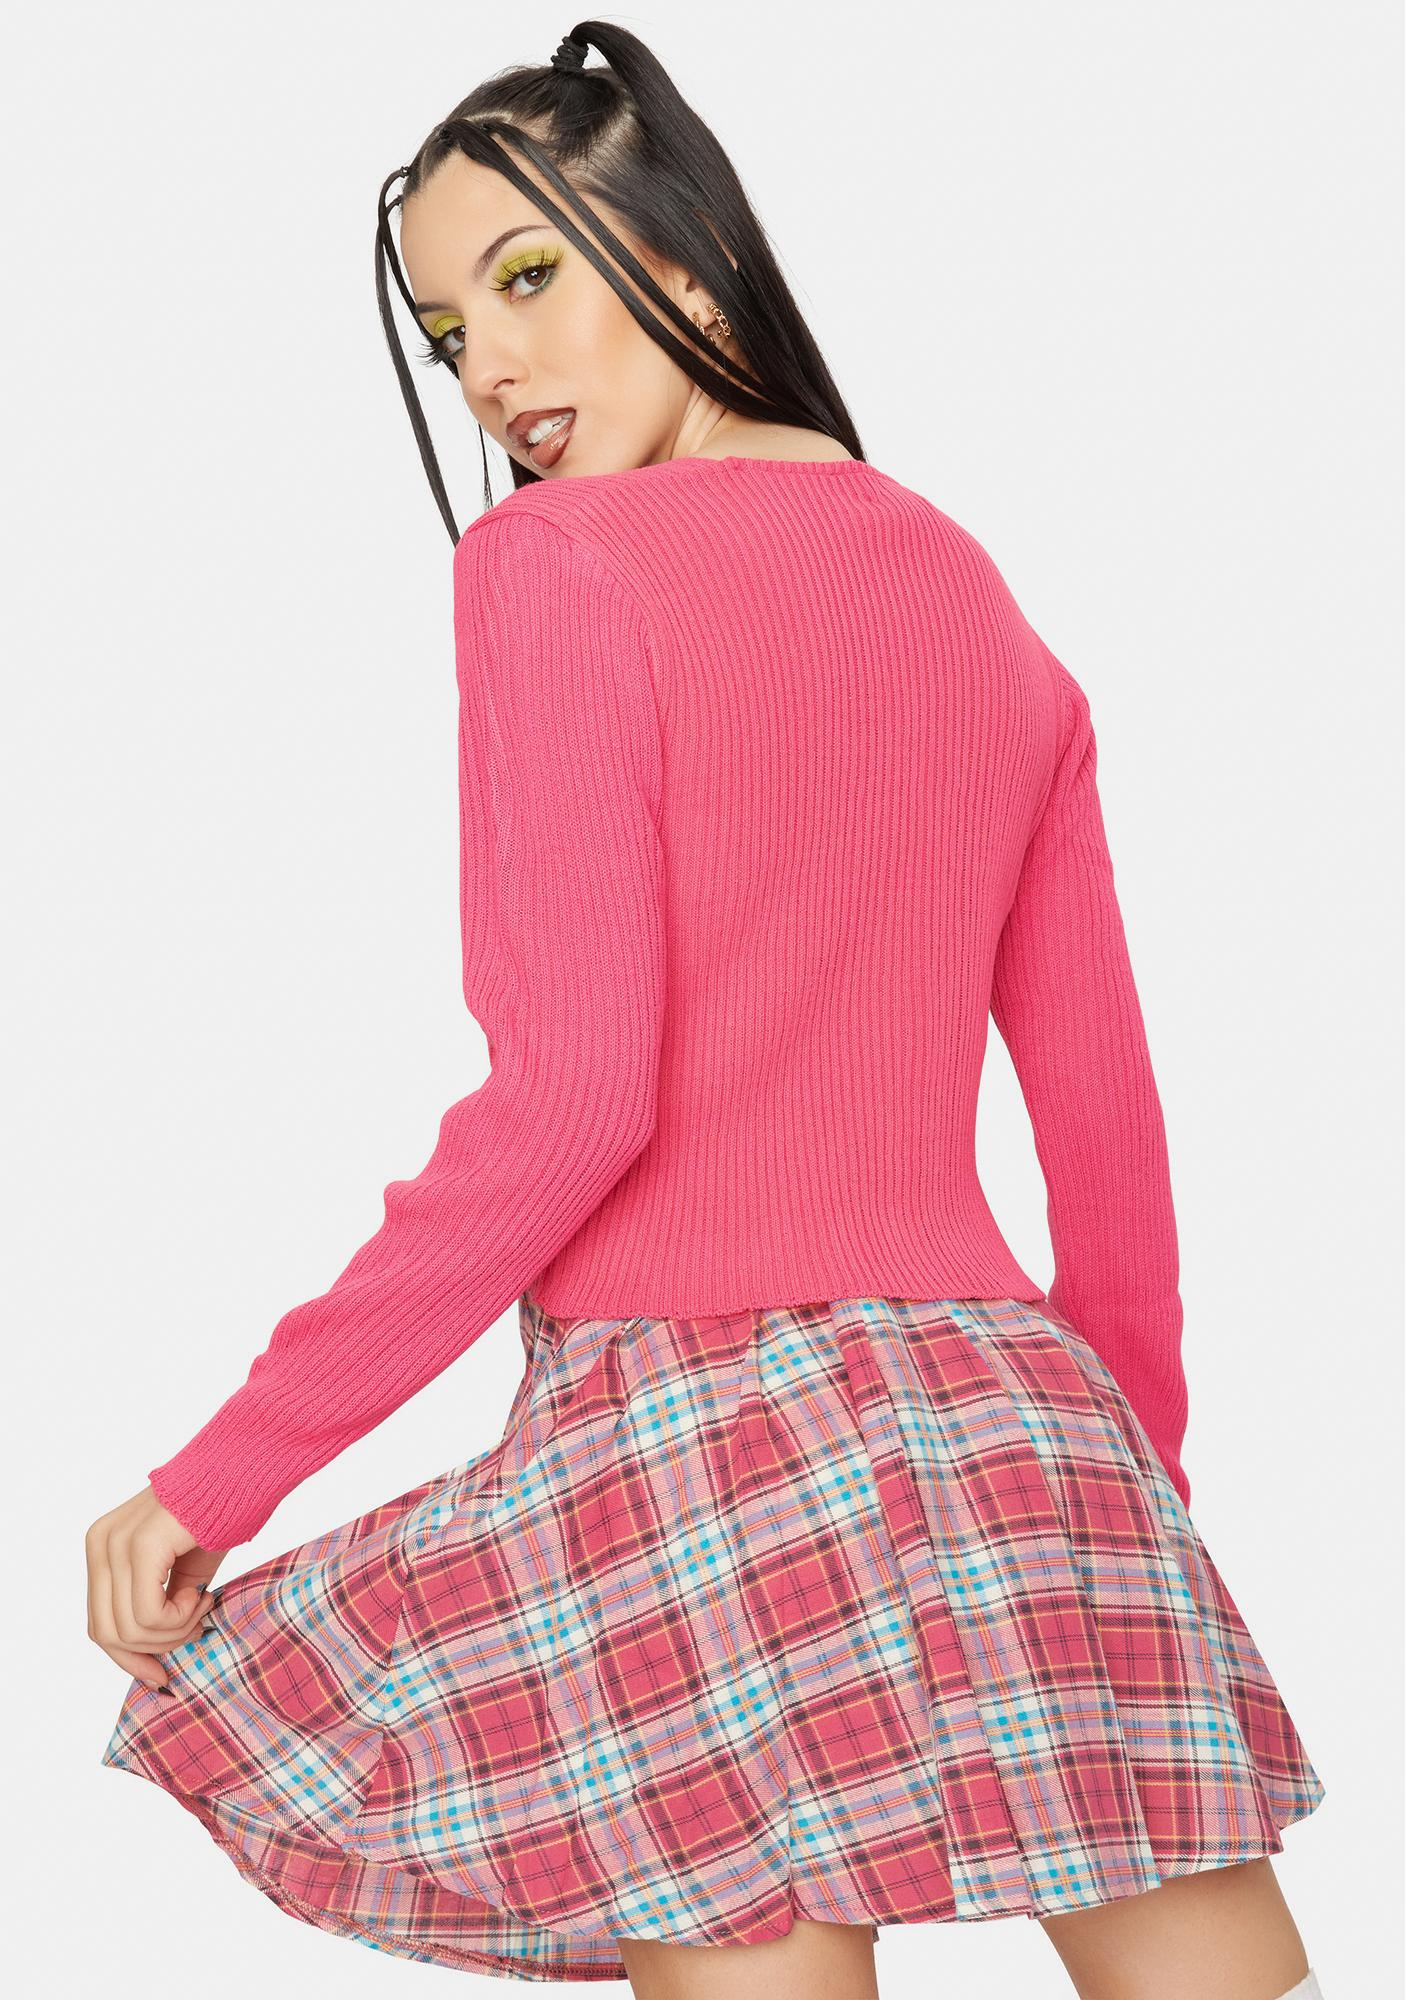 Daisy Street Pink 90's Cropped Cardigan